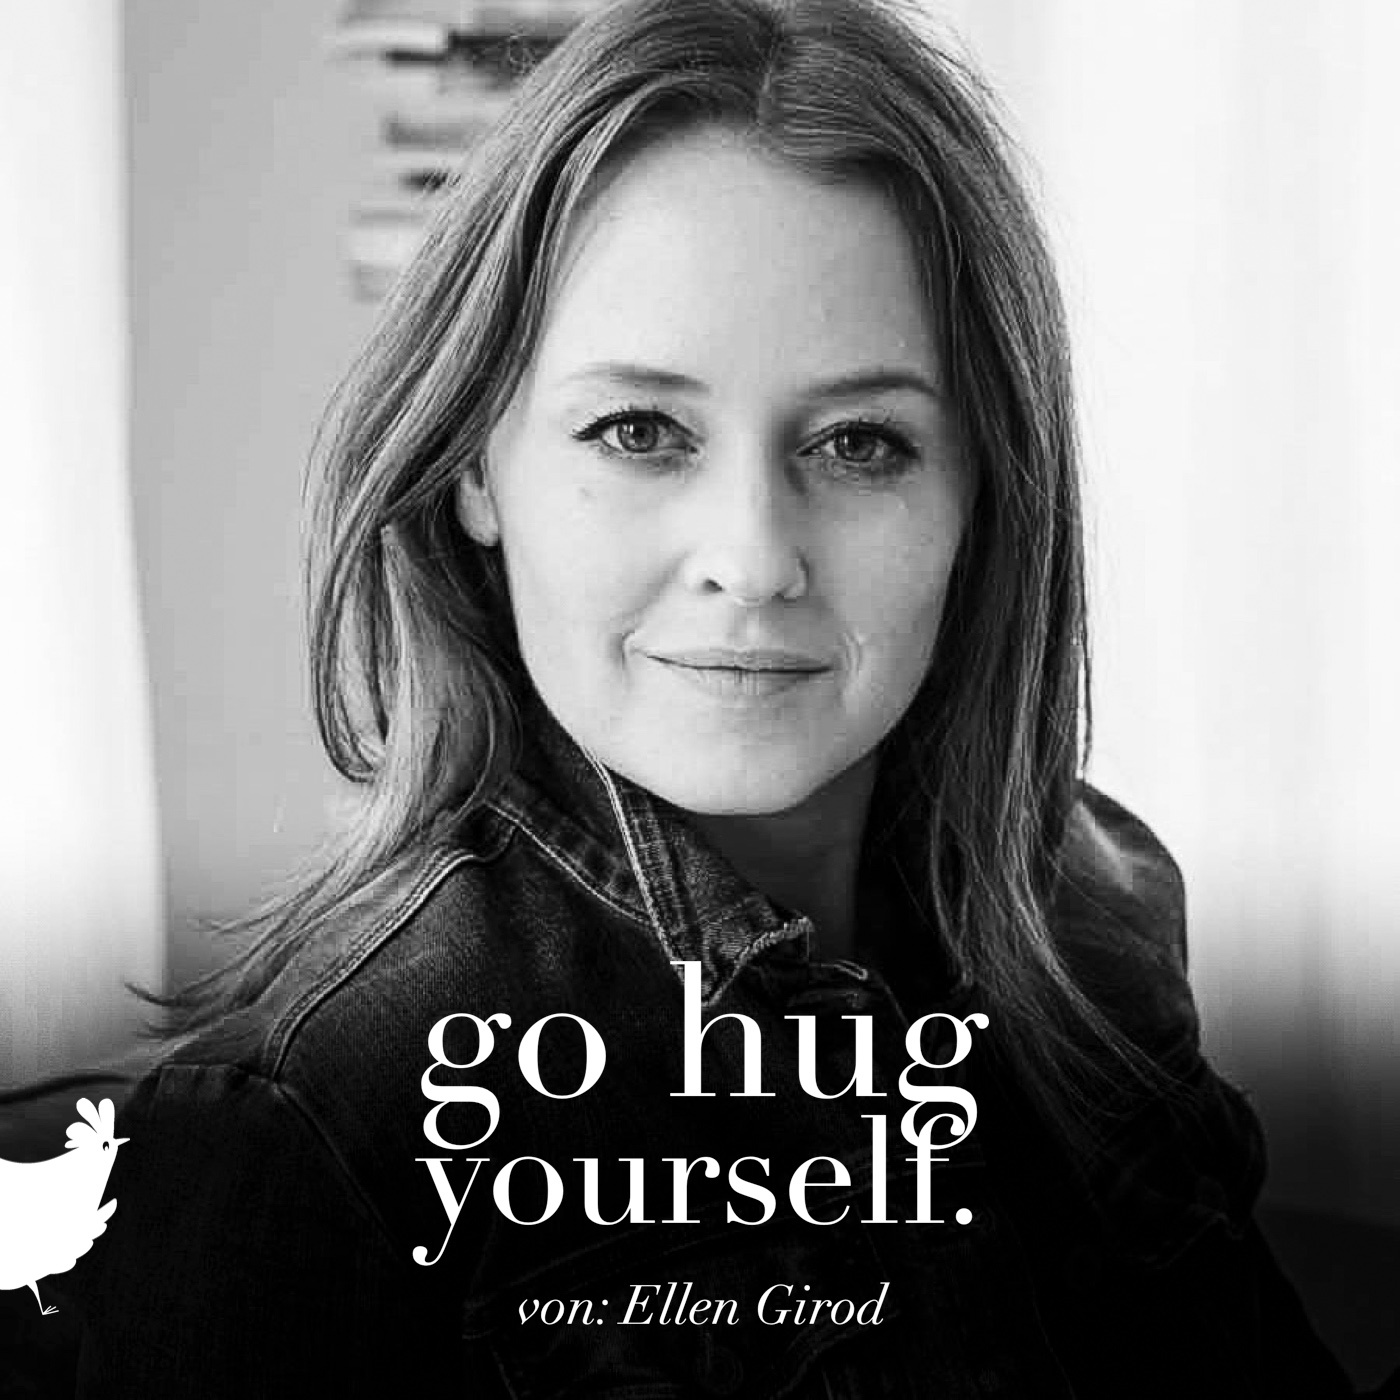 go hug yourself!